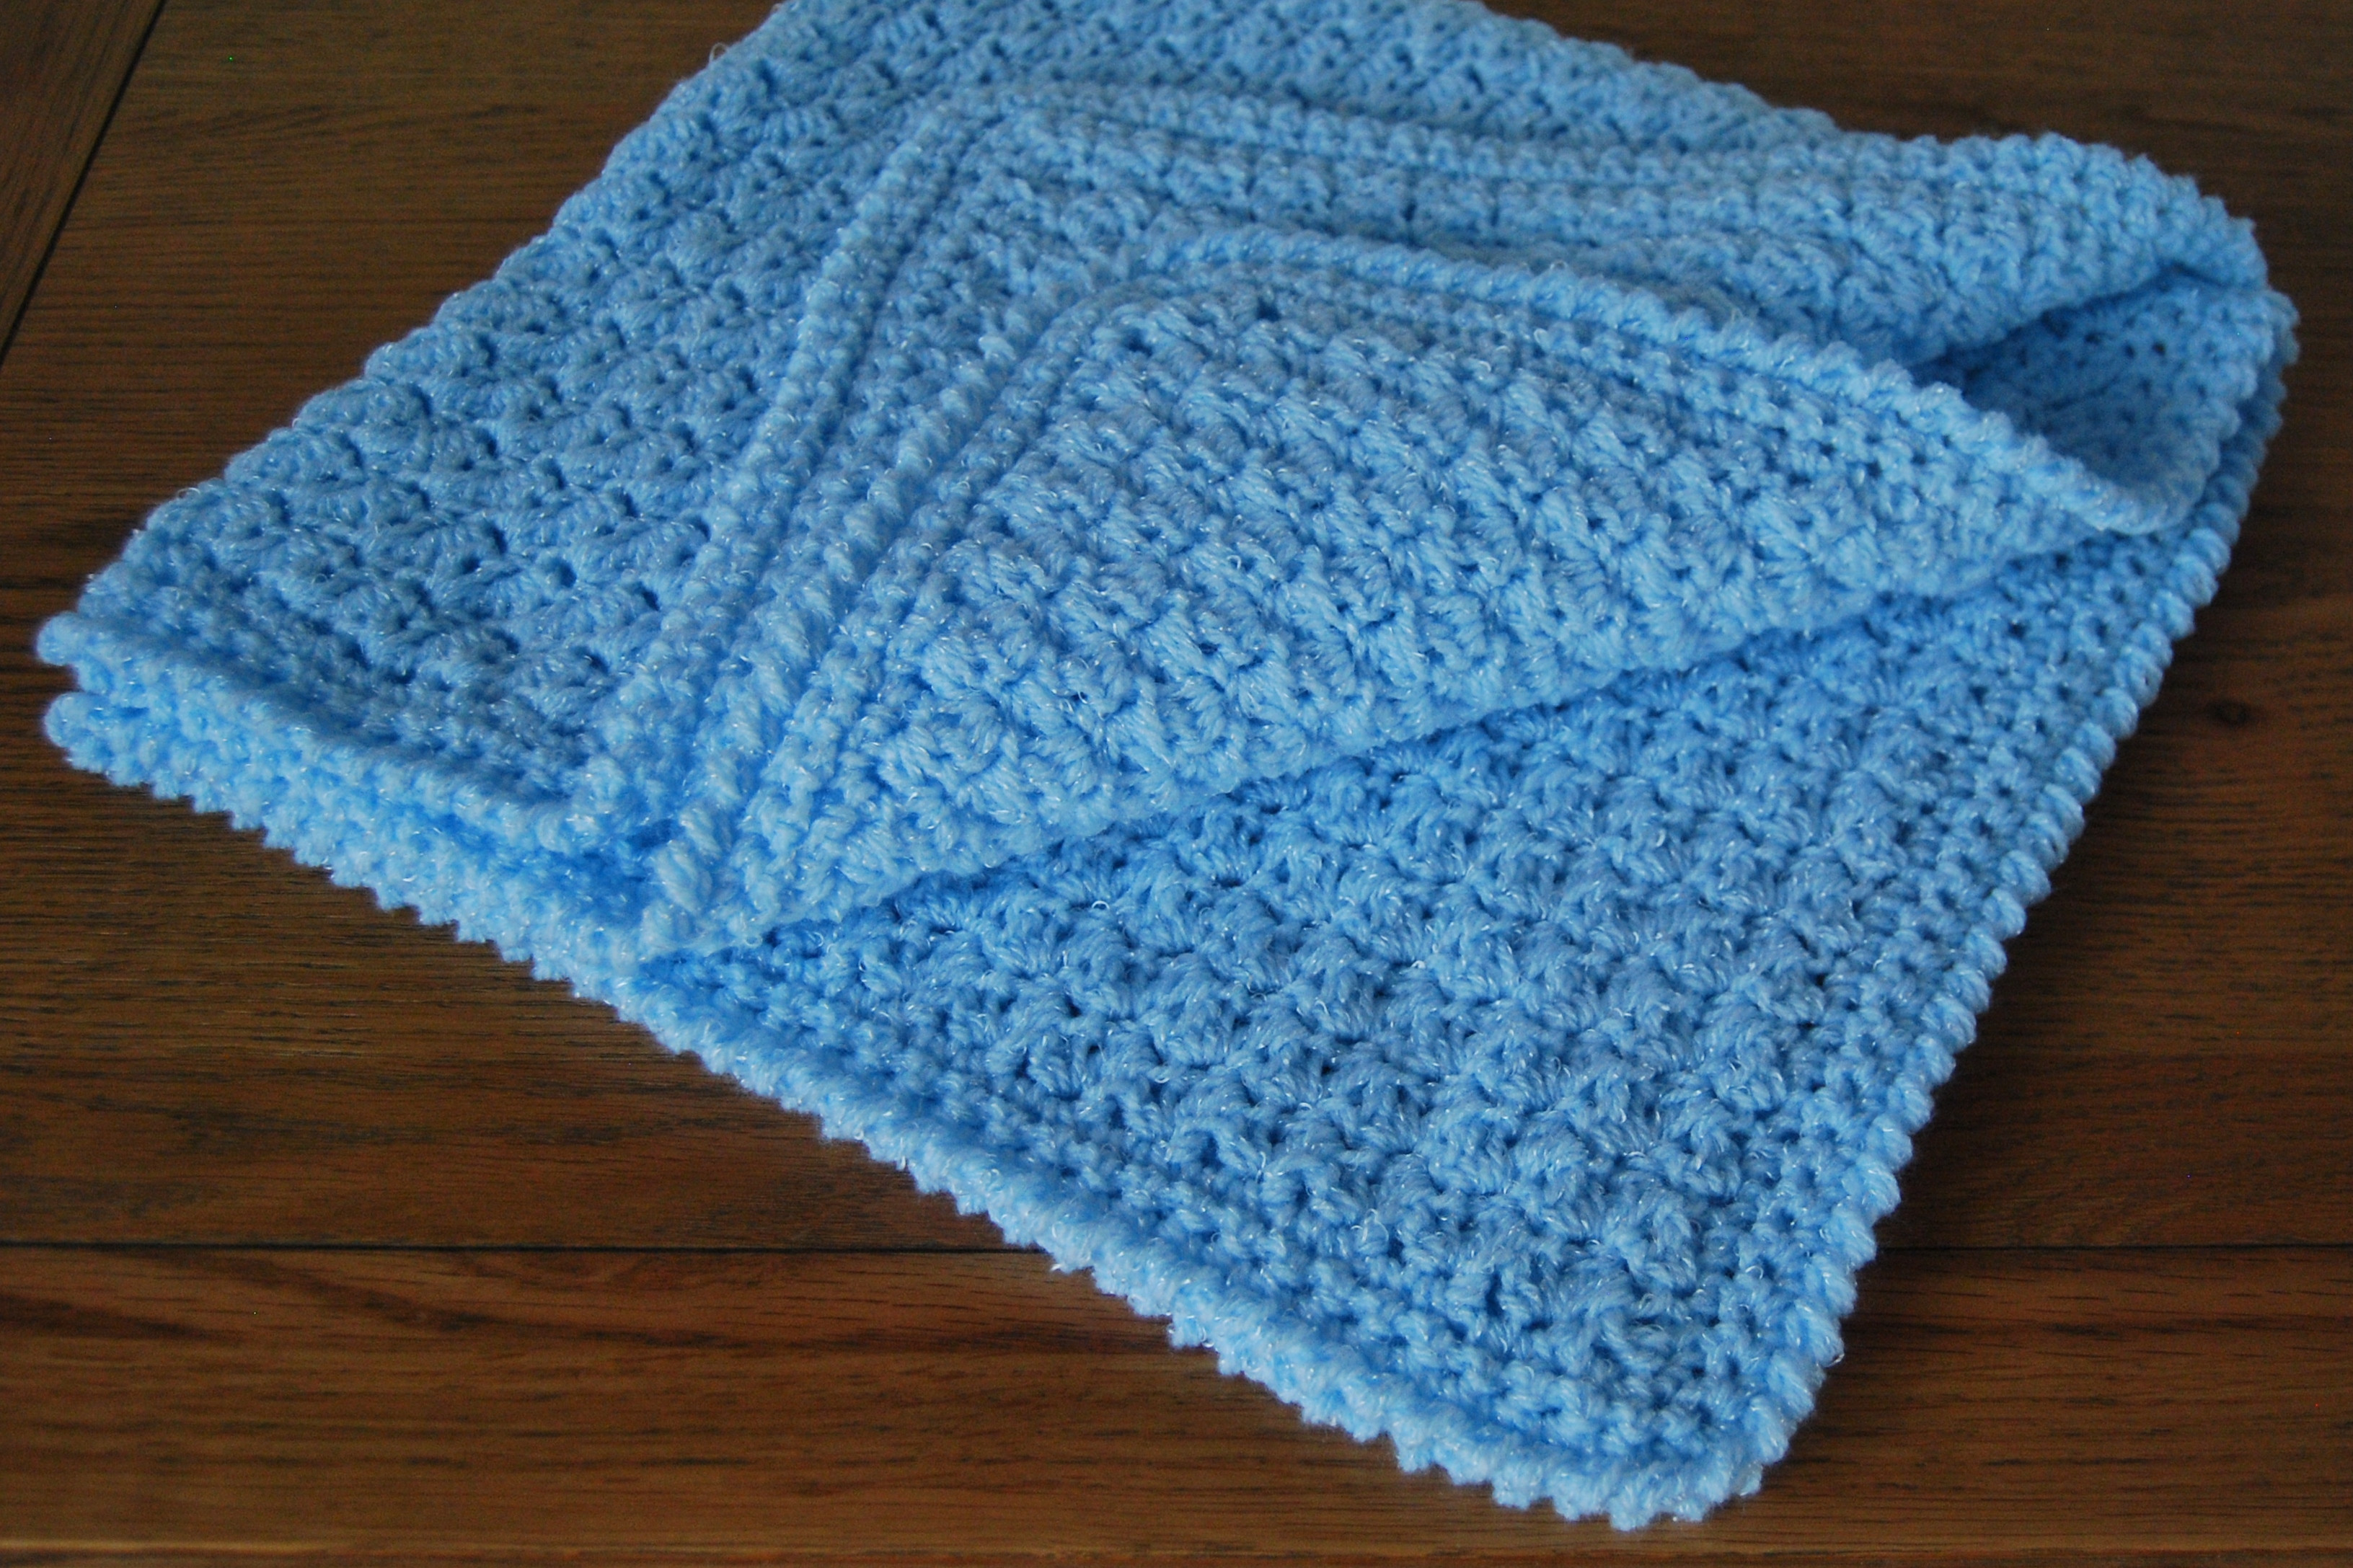 Baby Boy Crochet Blanket Patterns New Beautiful Baby Boy Blanket Crochet Pattern for Pram Of Baby Boy Crochet Blanket Patterns Inspirational Turquoise Baby Blanket Chunky Crochet Blanket for Baby Boy